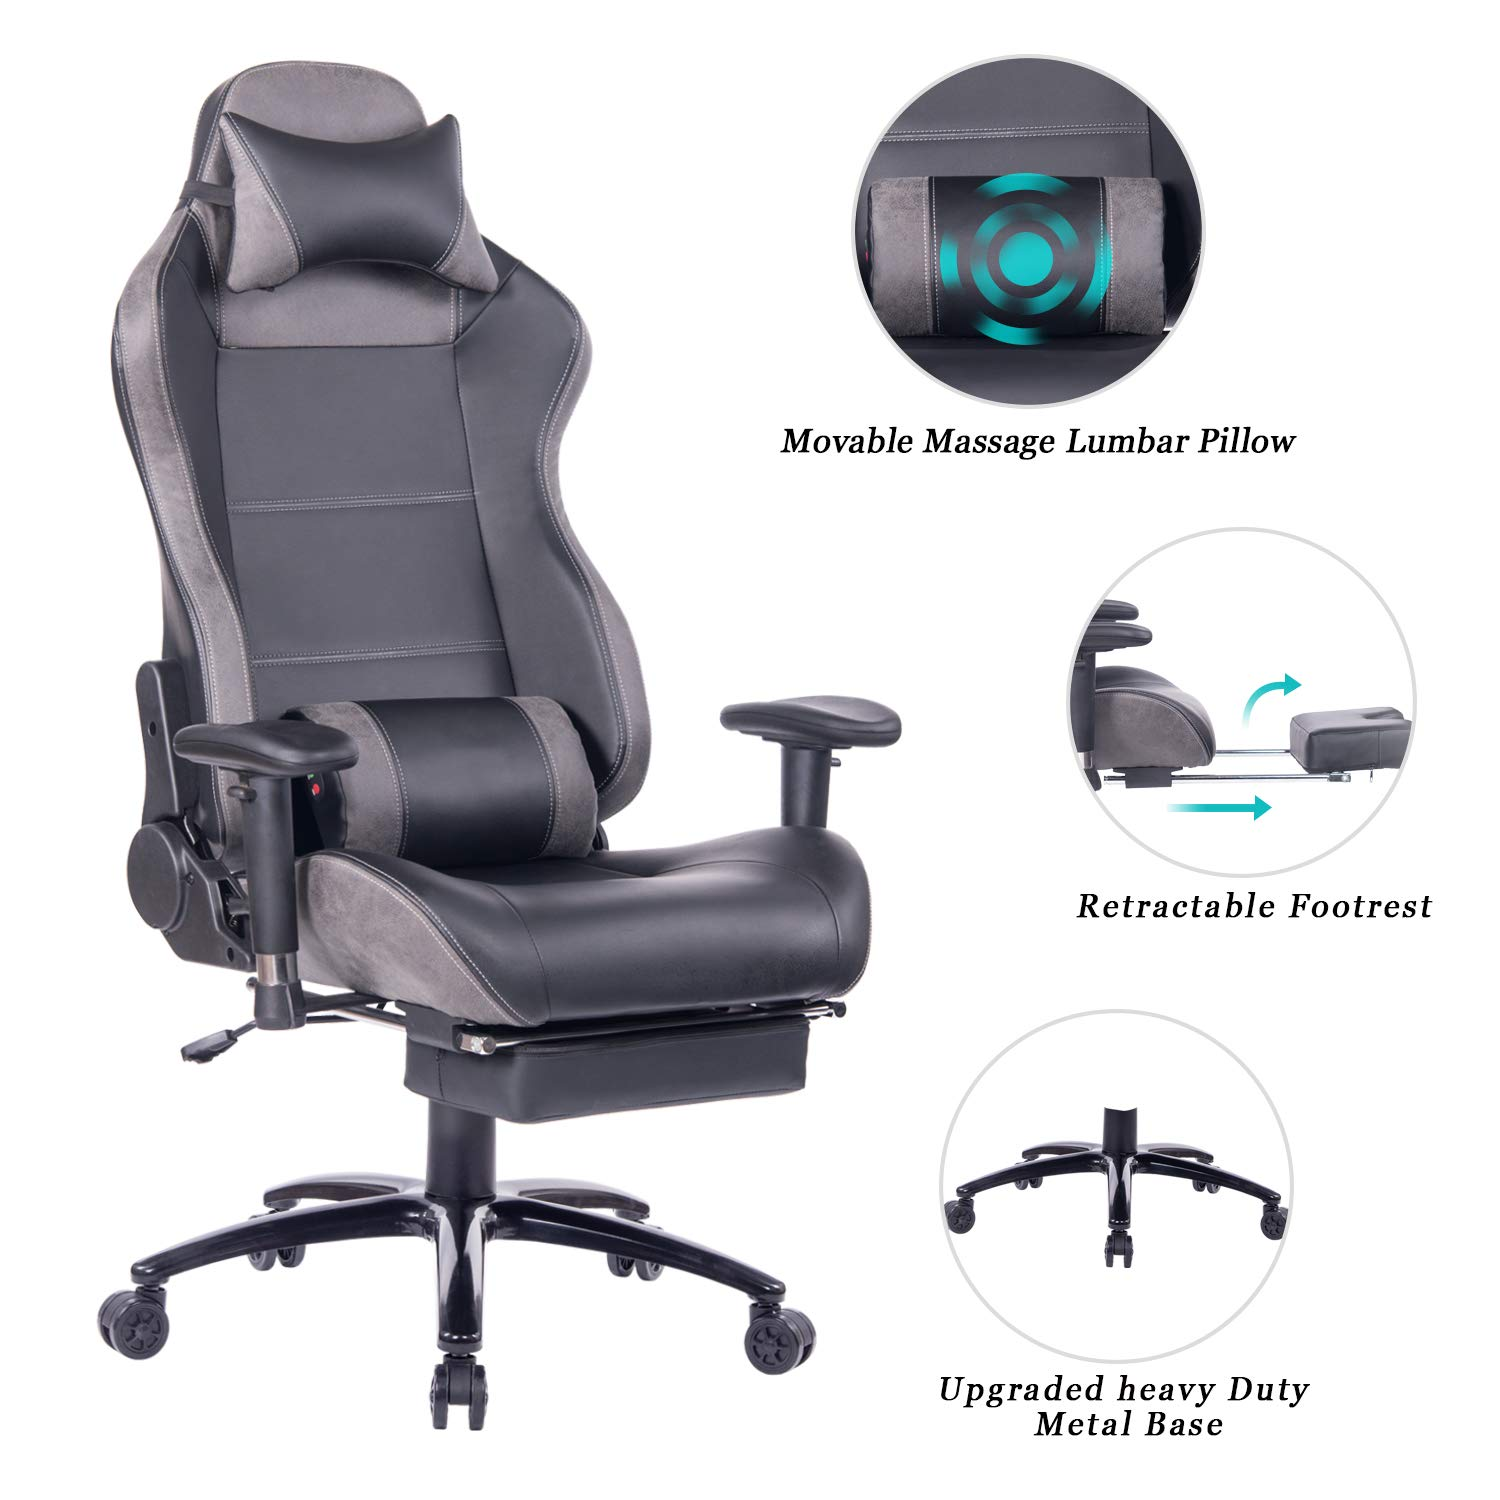 HEALGEN Massage Gaming Office Chair with Heavy Duty Metal Base,PC Computer Racing Gamer Chair Reclining Memory Foam Desk Chair with Footrest and Headrest (8263 Grey)